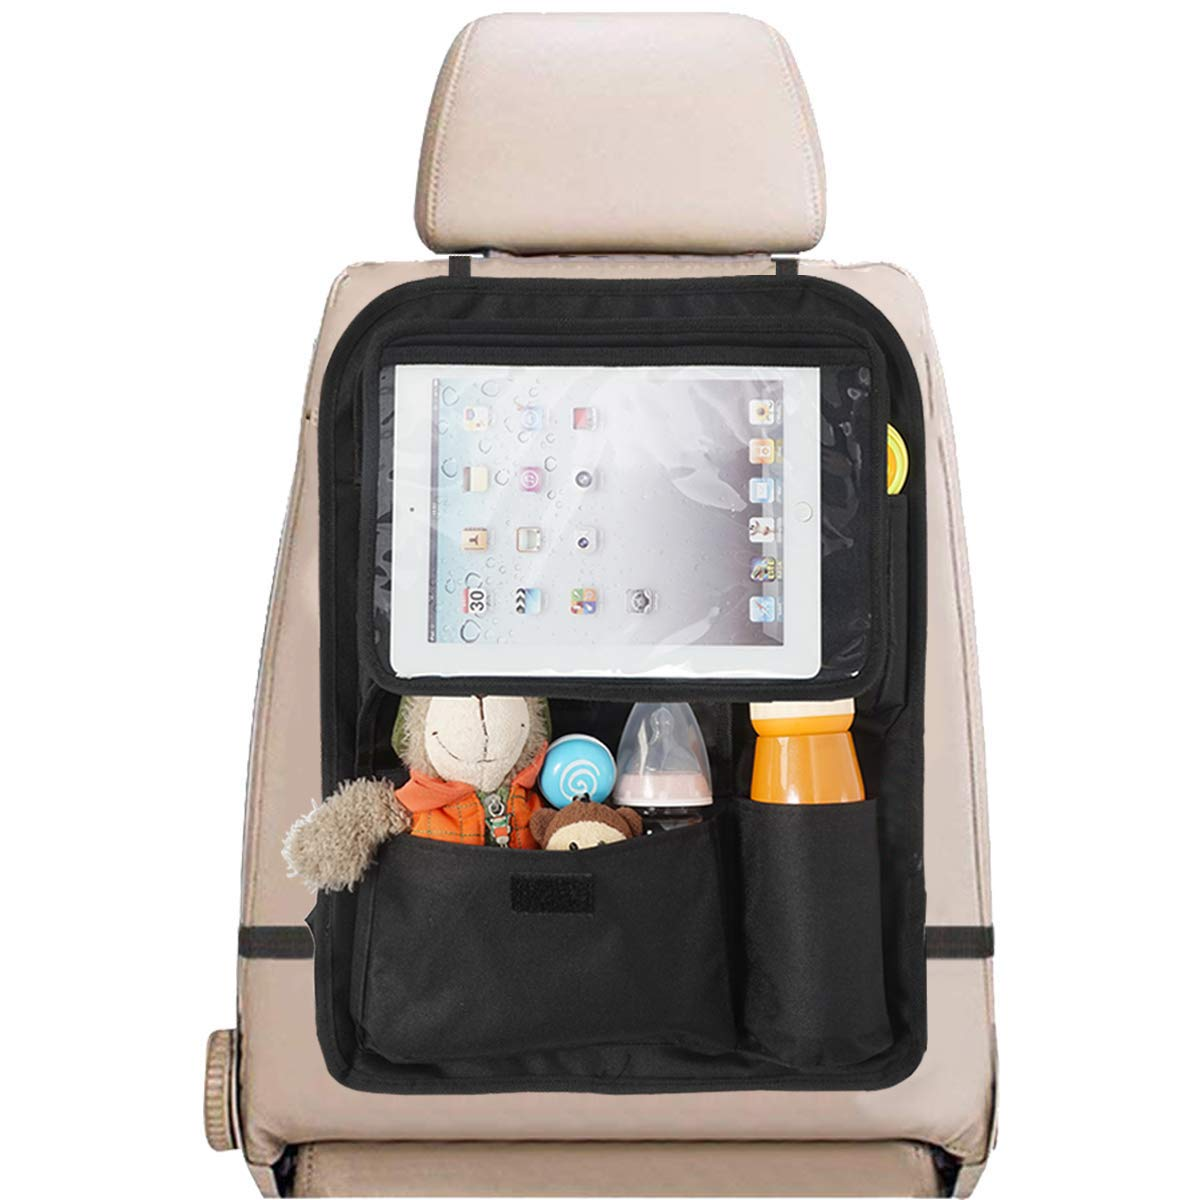 INFANZIA Car Seat Back Organizer, 10.5'' Touch Screen Tablet Holder, Backseat Organizer for Kids Accesories Toy Storage by INFANZIA